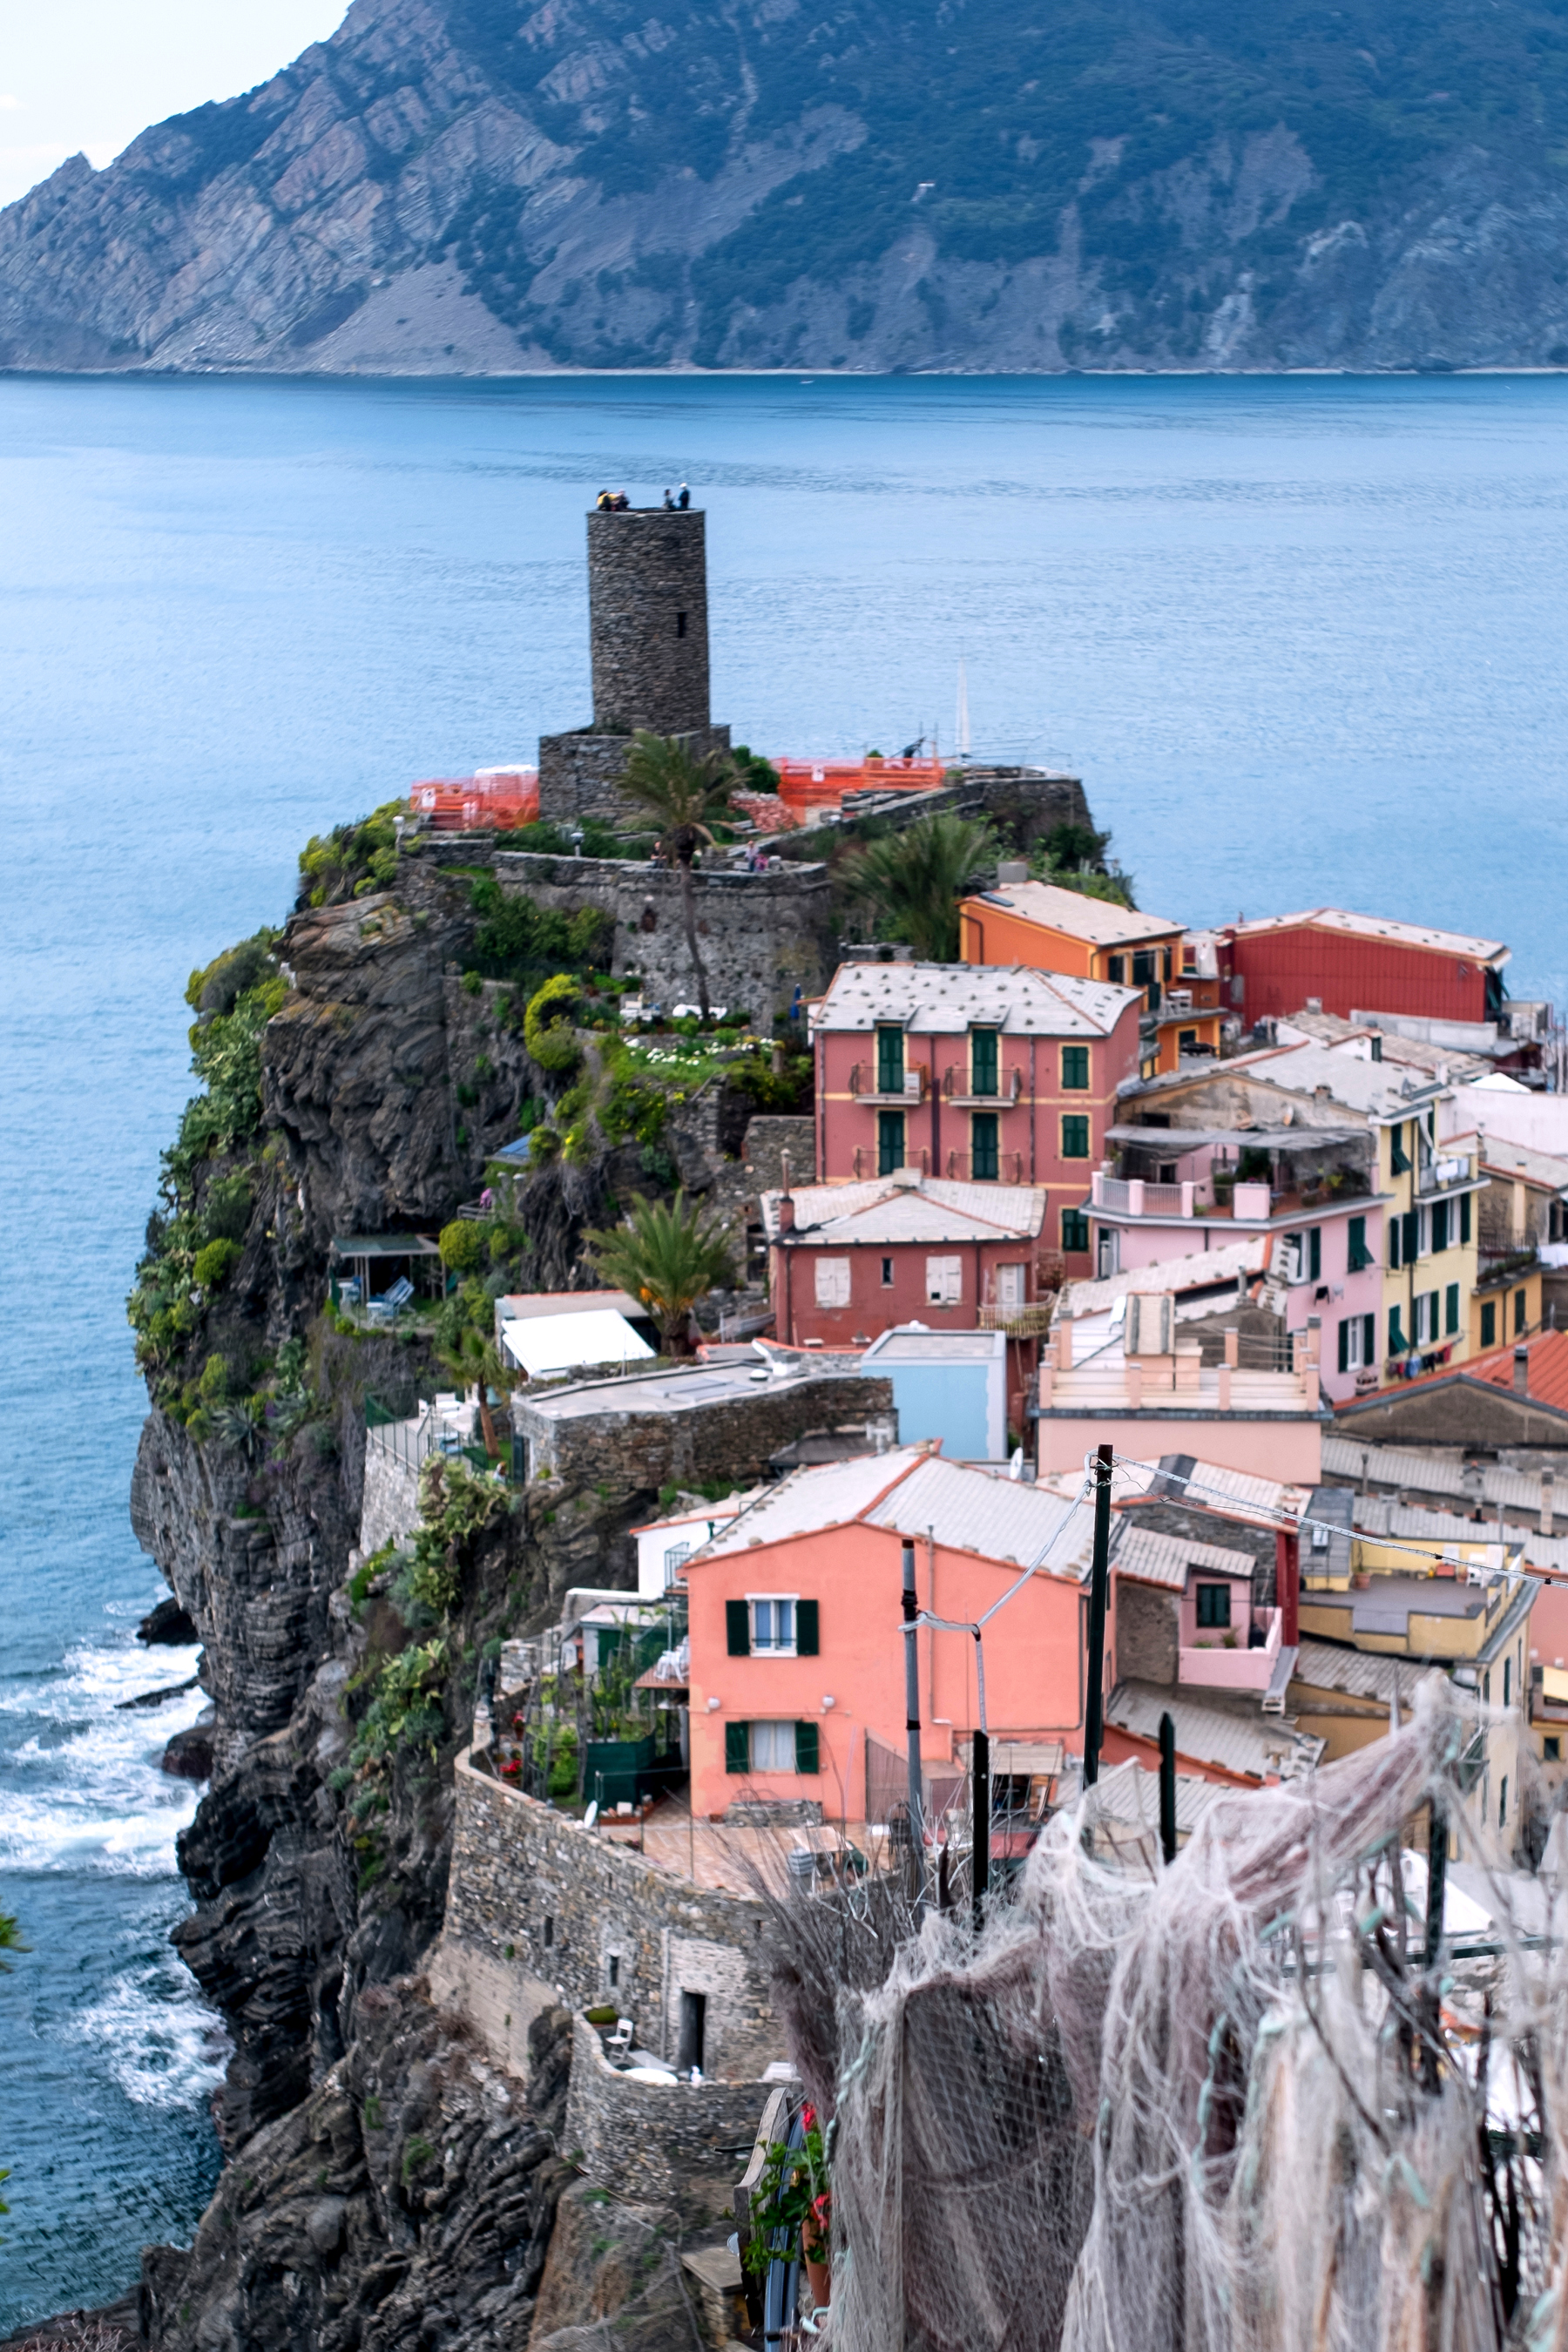 Vernazza is the fourth town heading north in the Cinque Terre region, has no car traffic and remains one of the truest fishing villages on the Italian Riviera.The first records of Vernazza date back to the year 1080. An active maritime base, it was a likely point of departure for naval forces in defense of pirates.